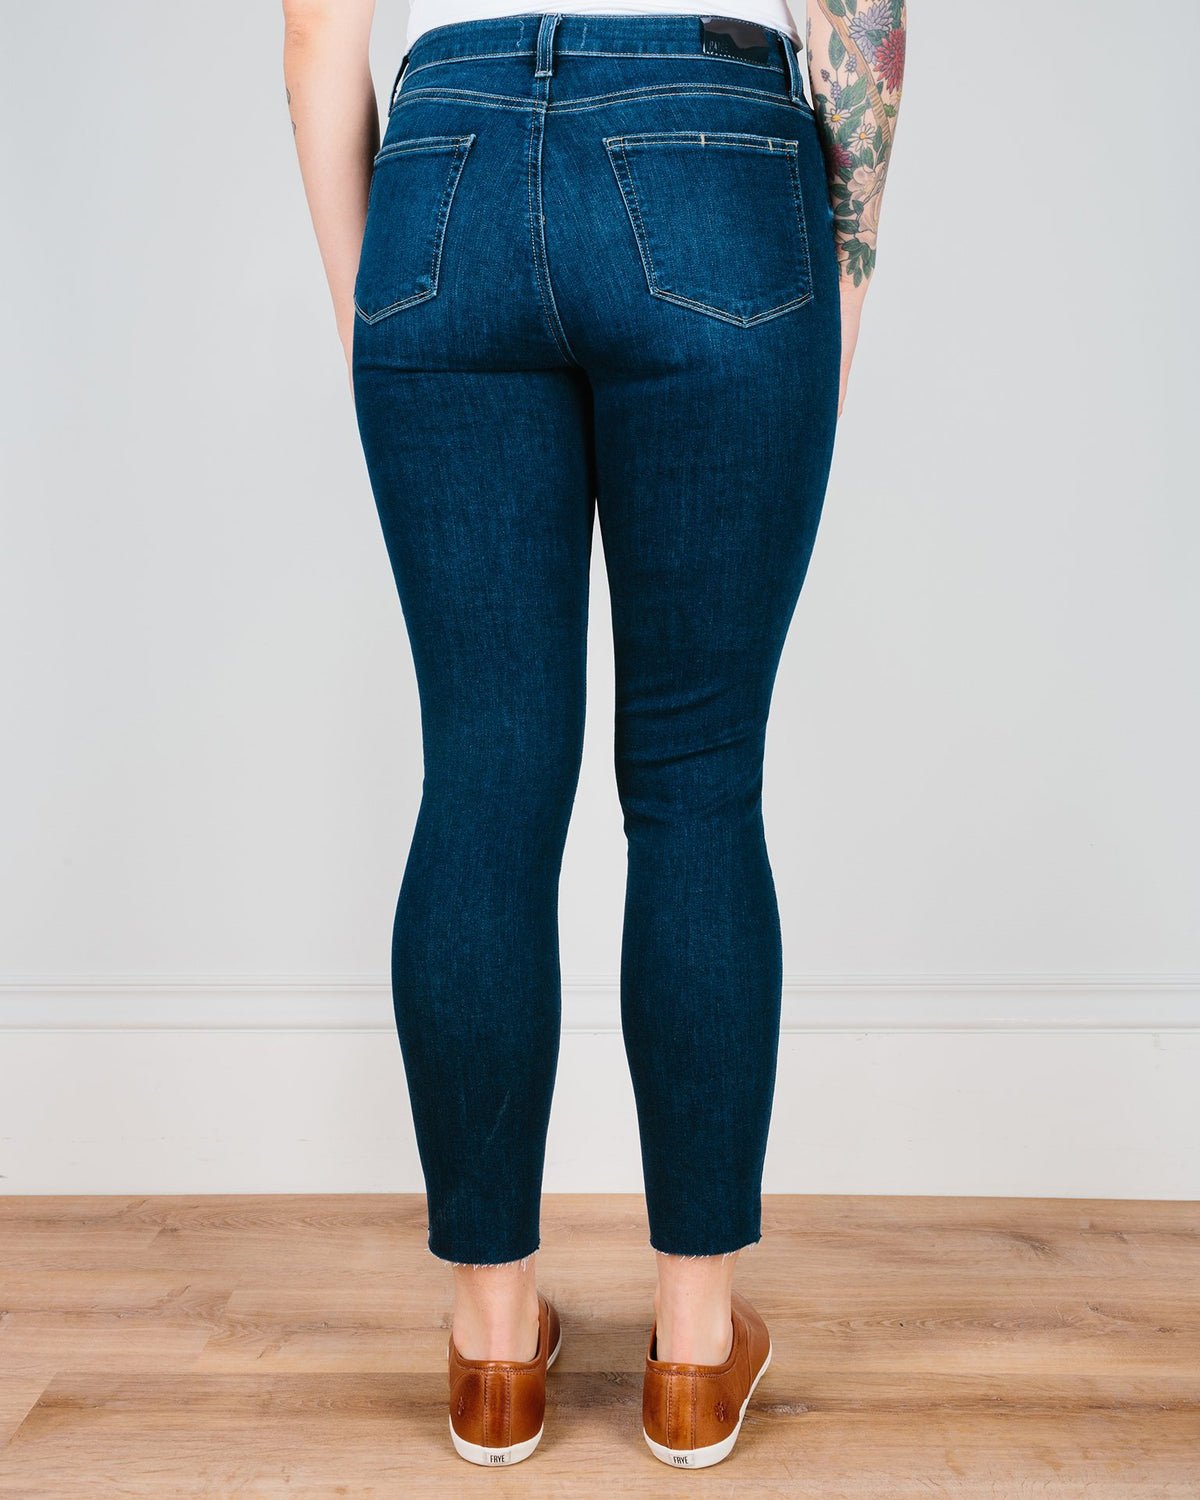 Paige Premium Denim Denim Greece / 24 Hoxton Ankle Skinny in Greece